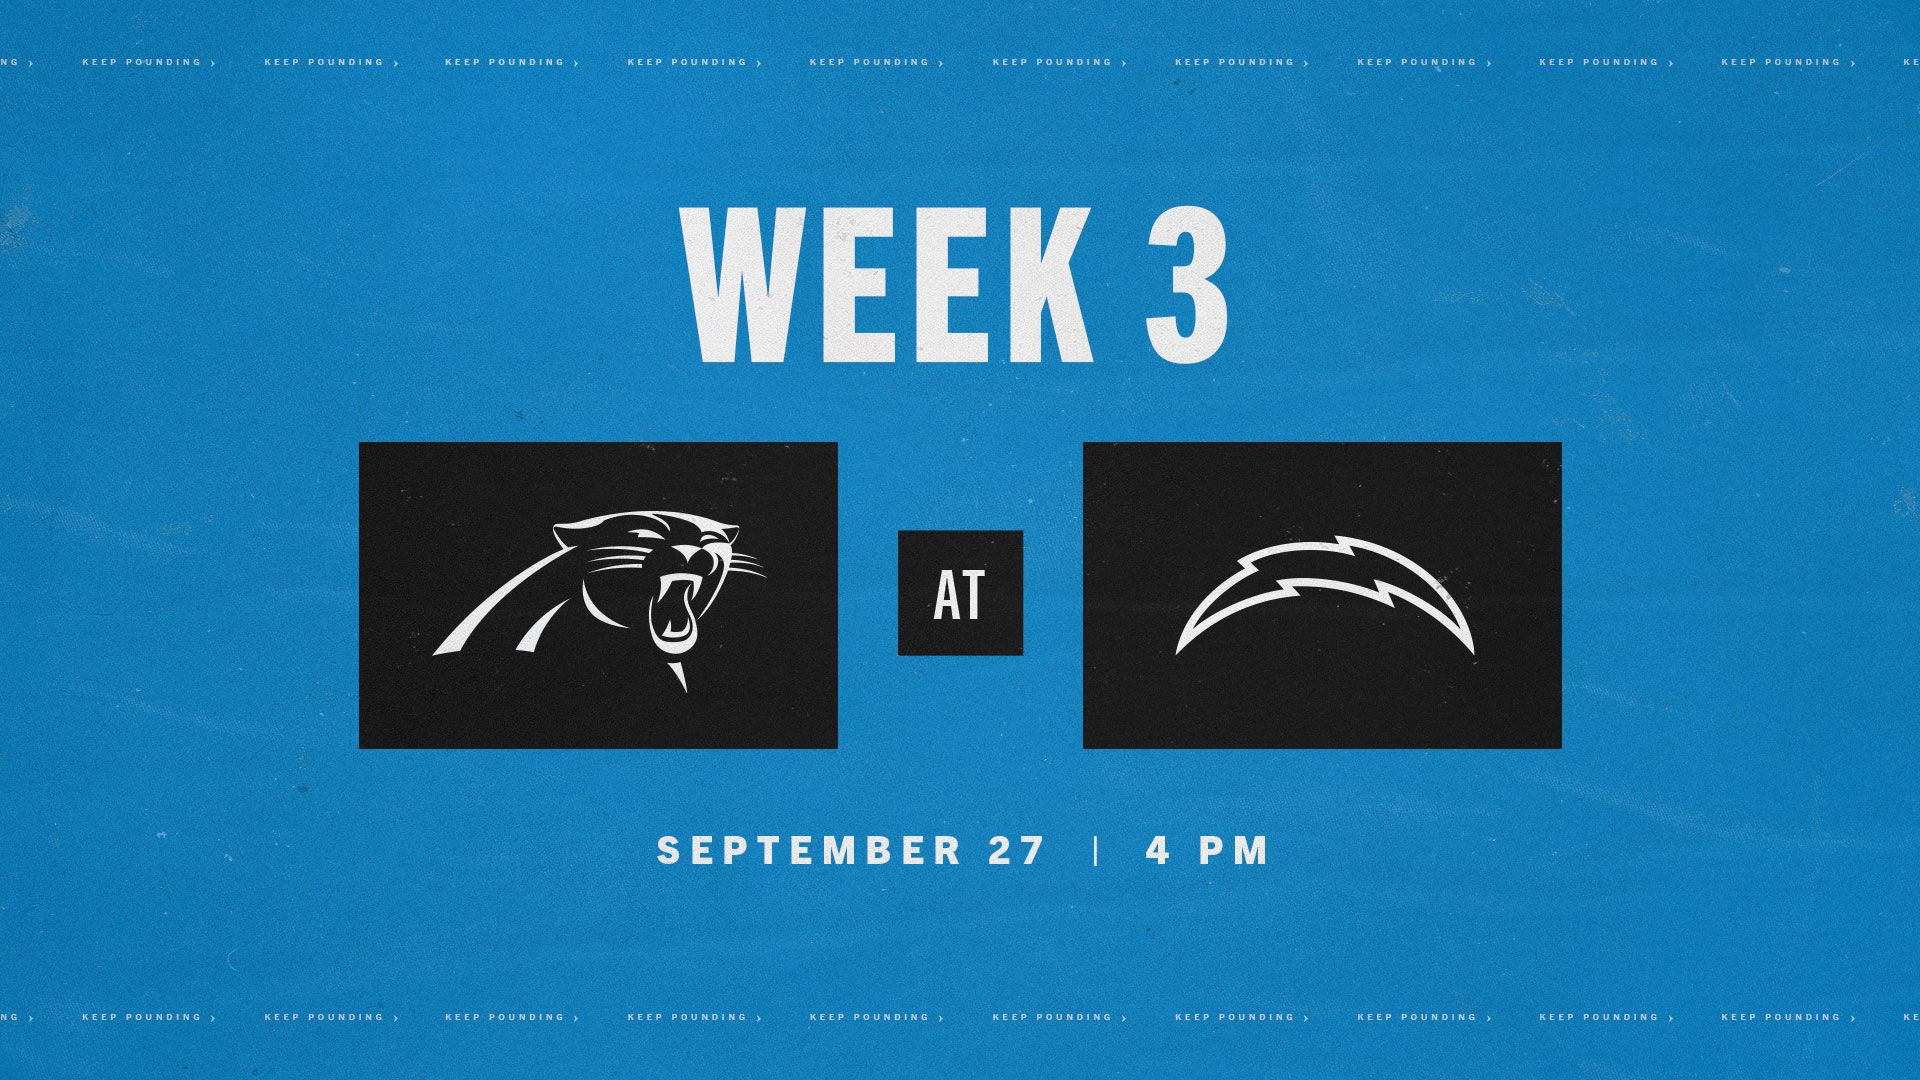 How to Watch - Week 3